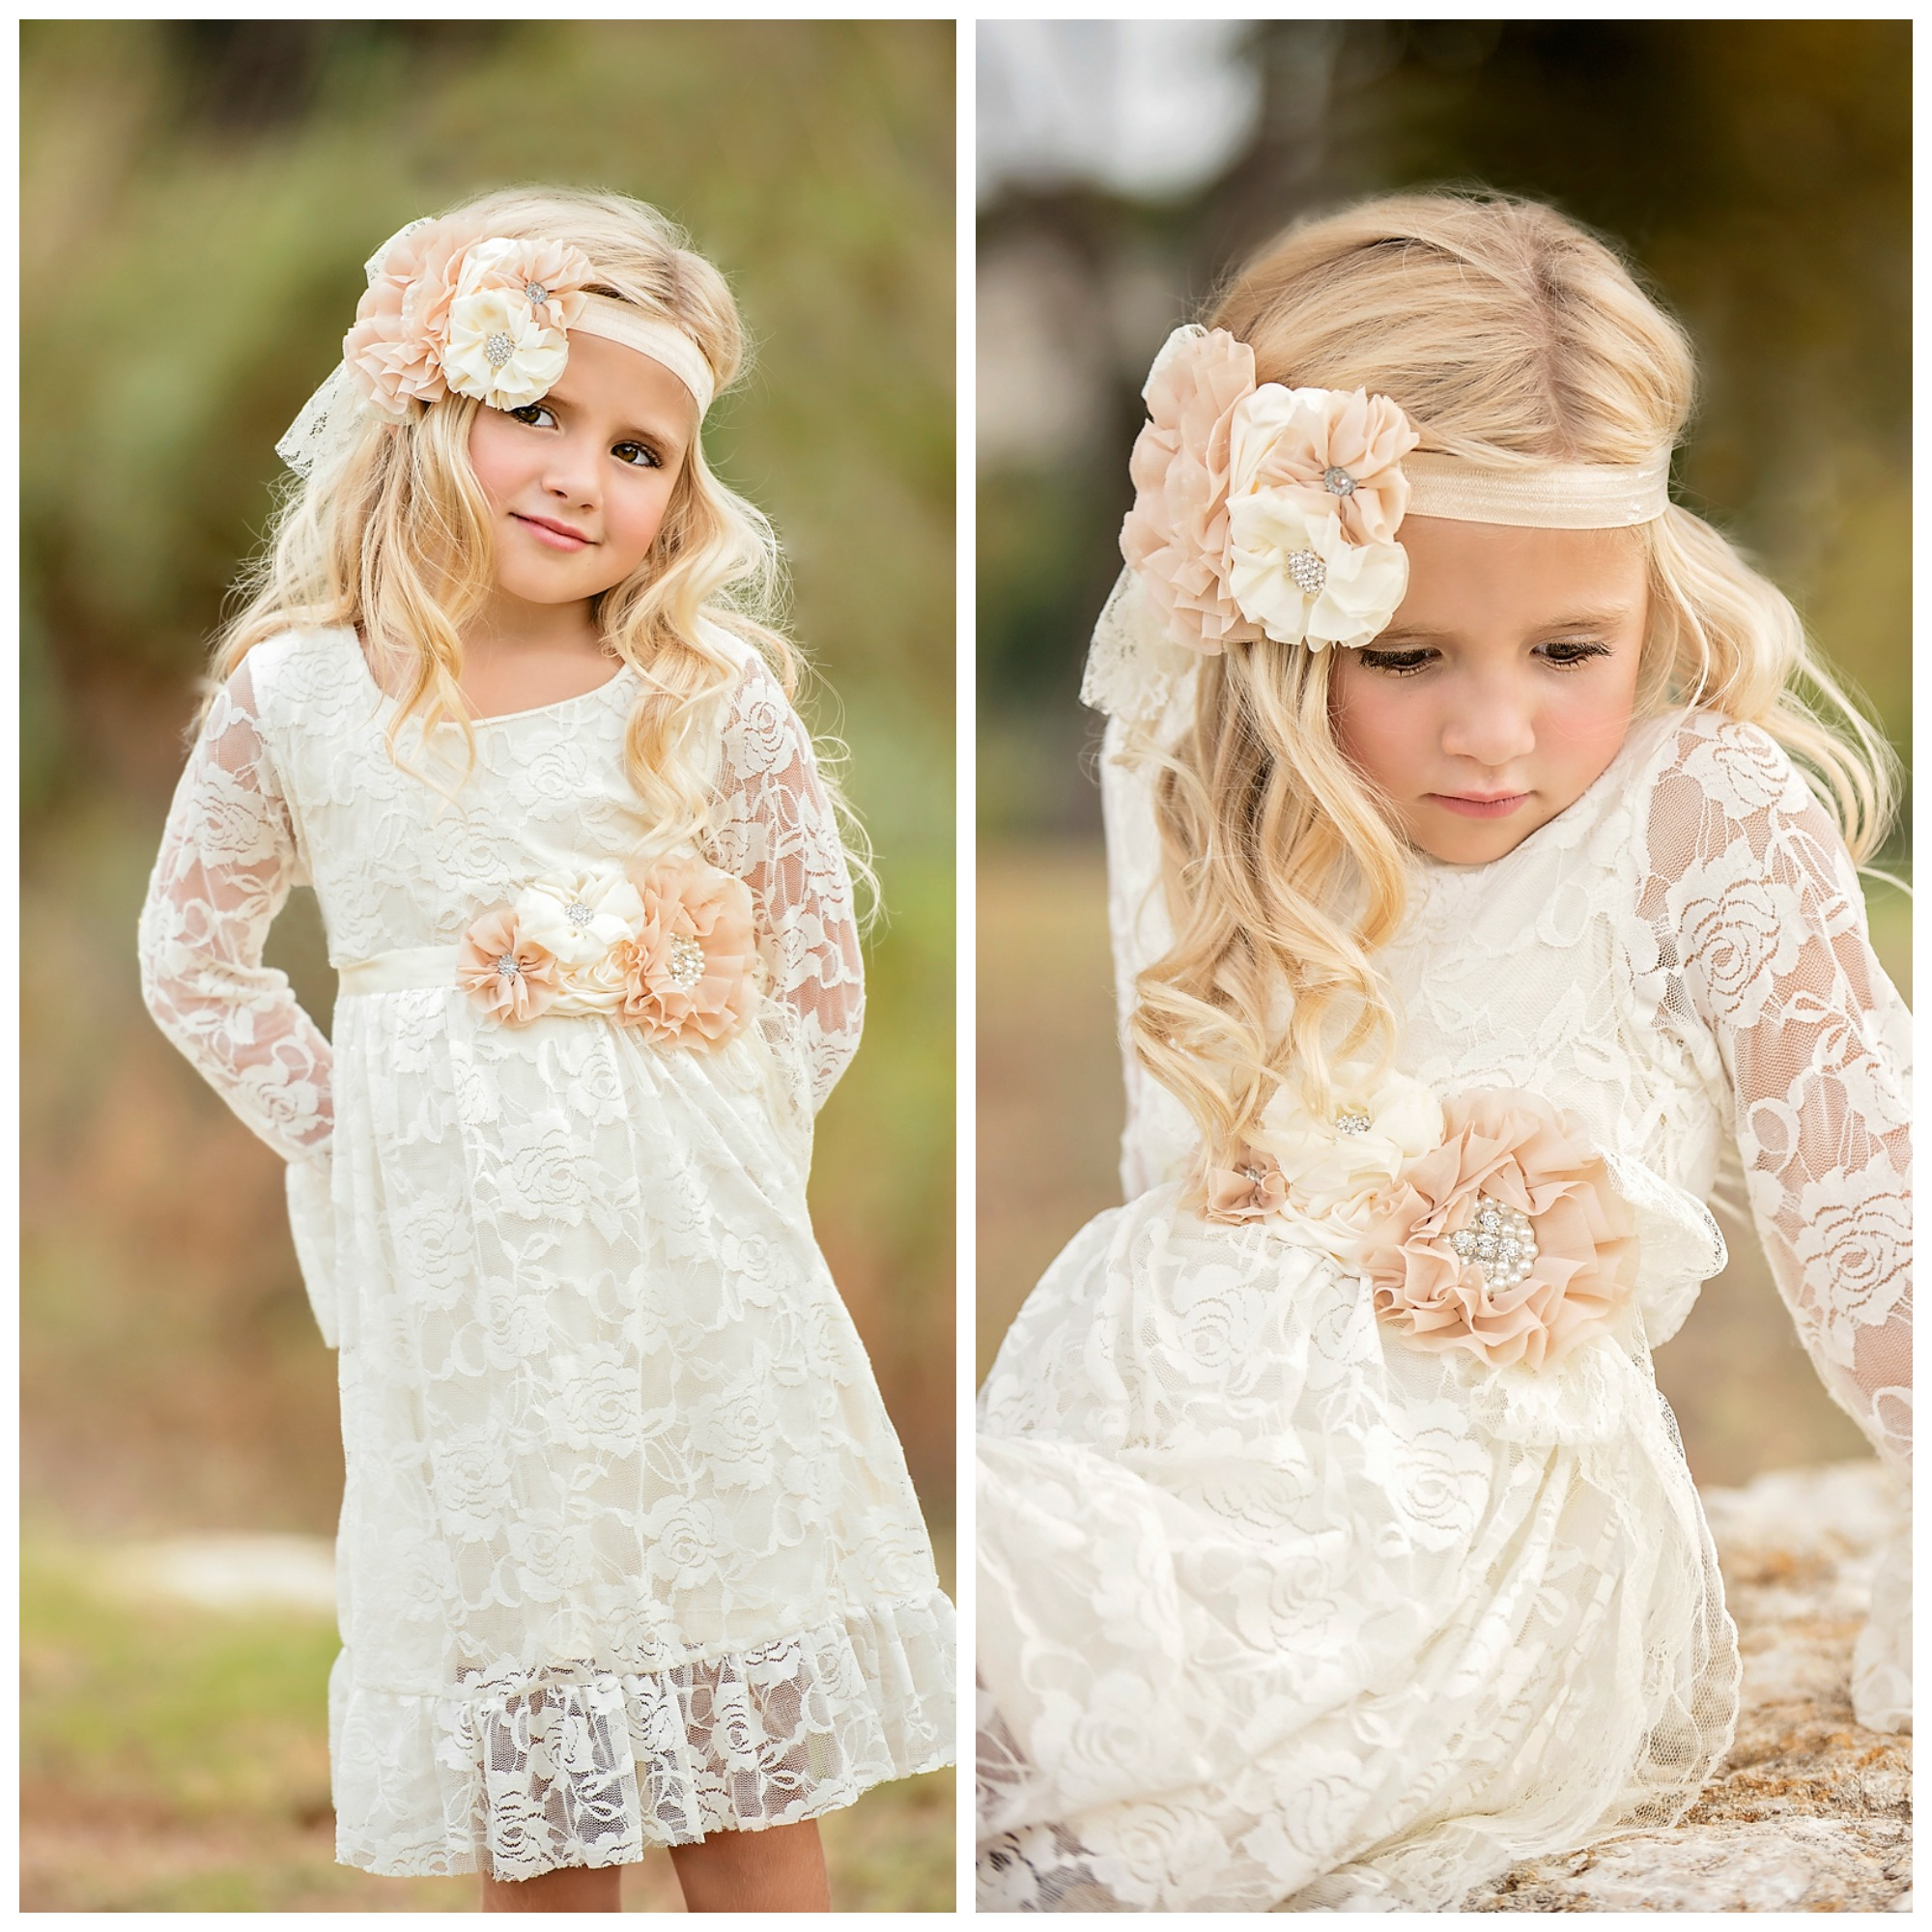 Sweetheart Boho Chic Ivory Lace Dress Set - Fancy Pants